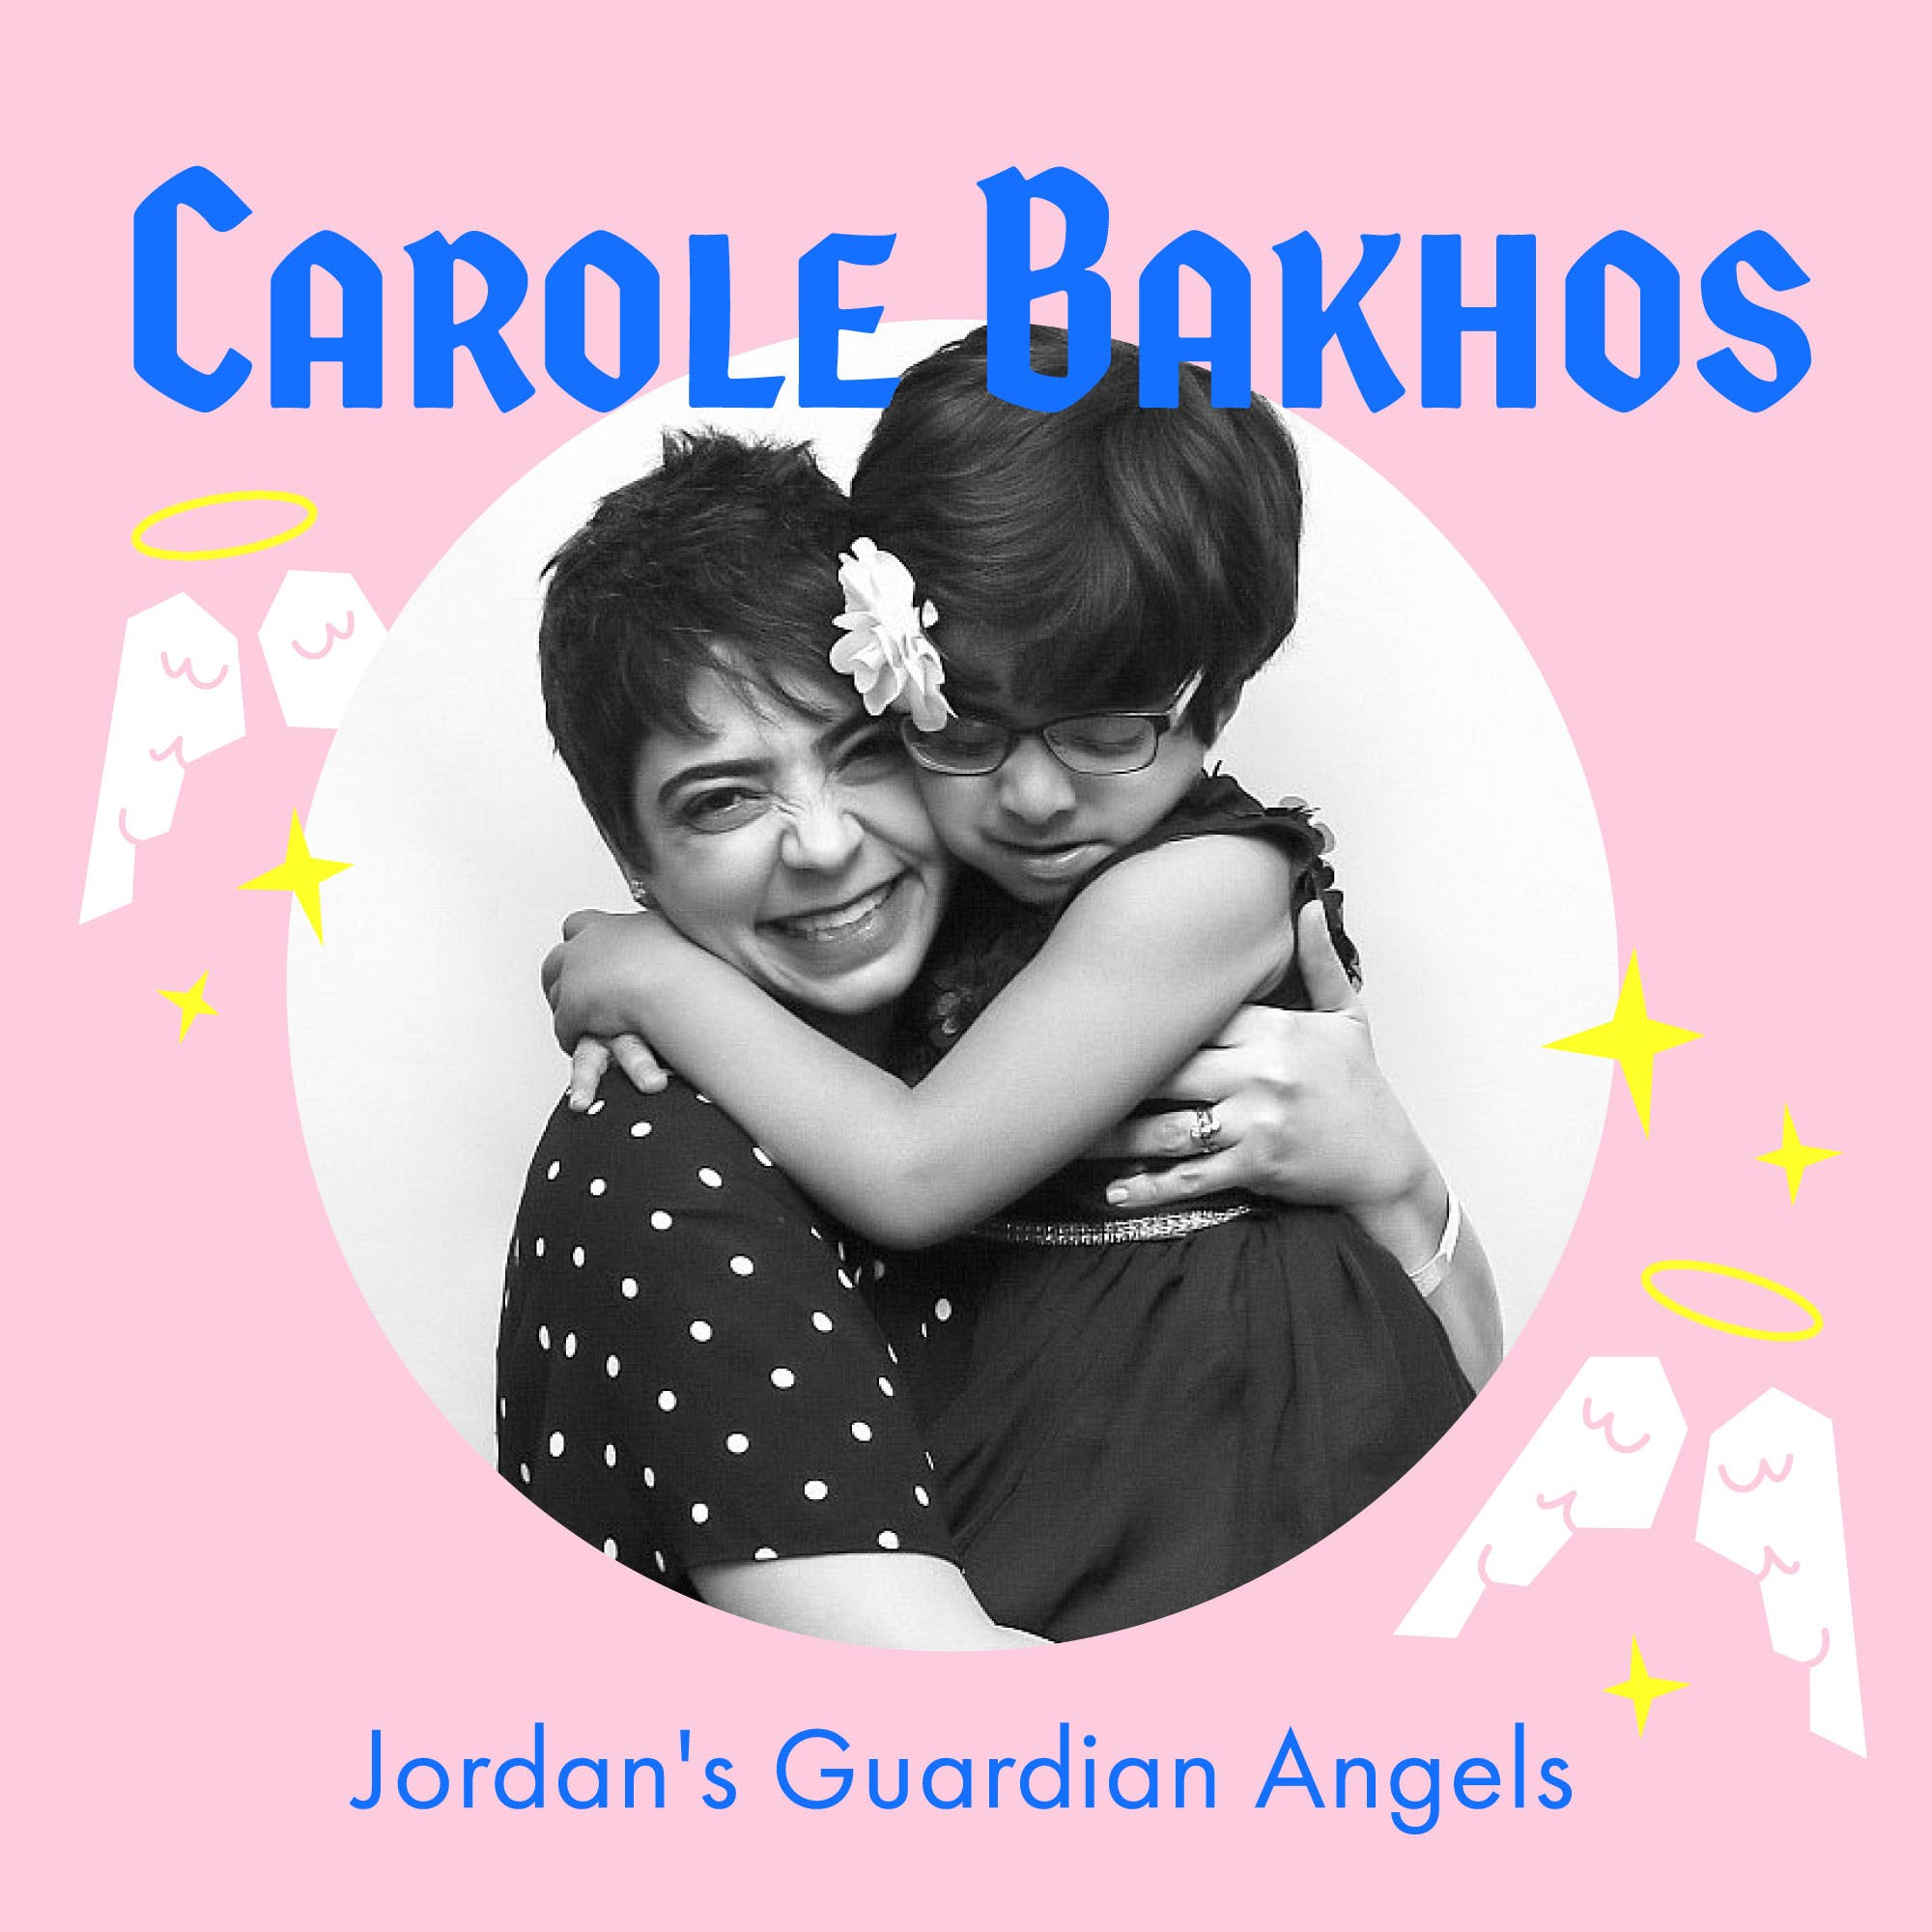 A Mother's Story of Finding Your People, Accepting a Diagnosis and Loving Her Kid for Exactly Who She is with Jordan's Guardian Angels Mom – Carole Bakhos